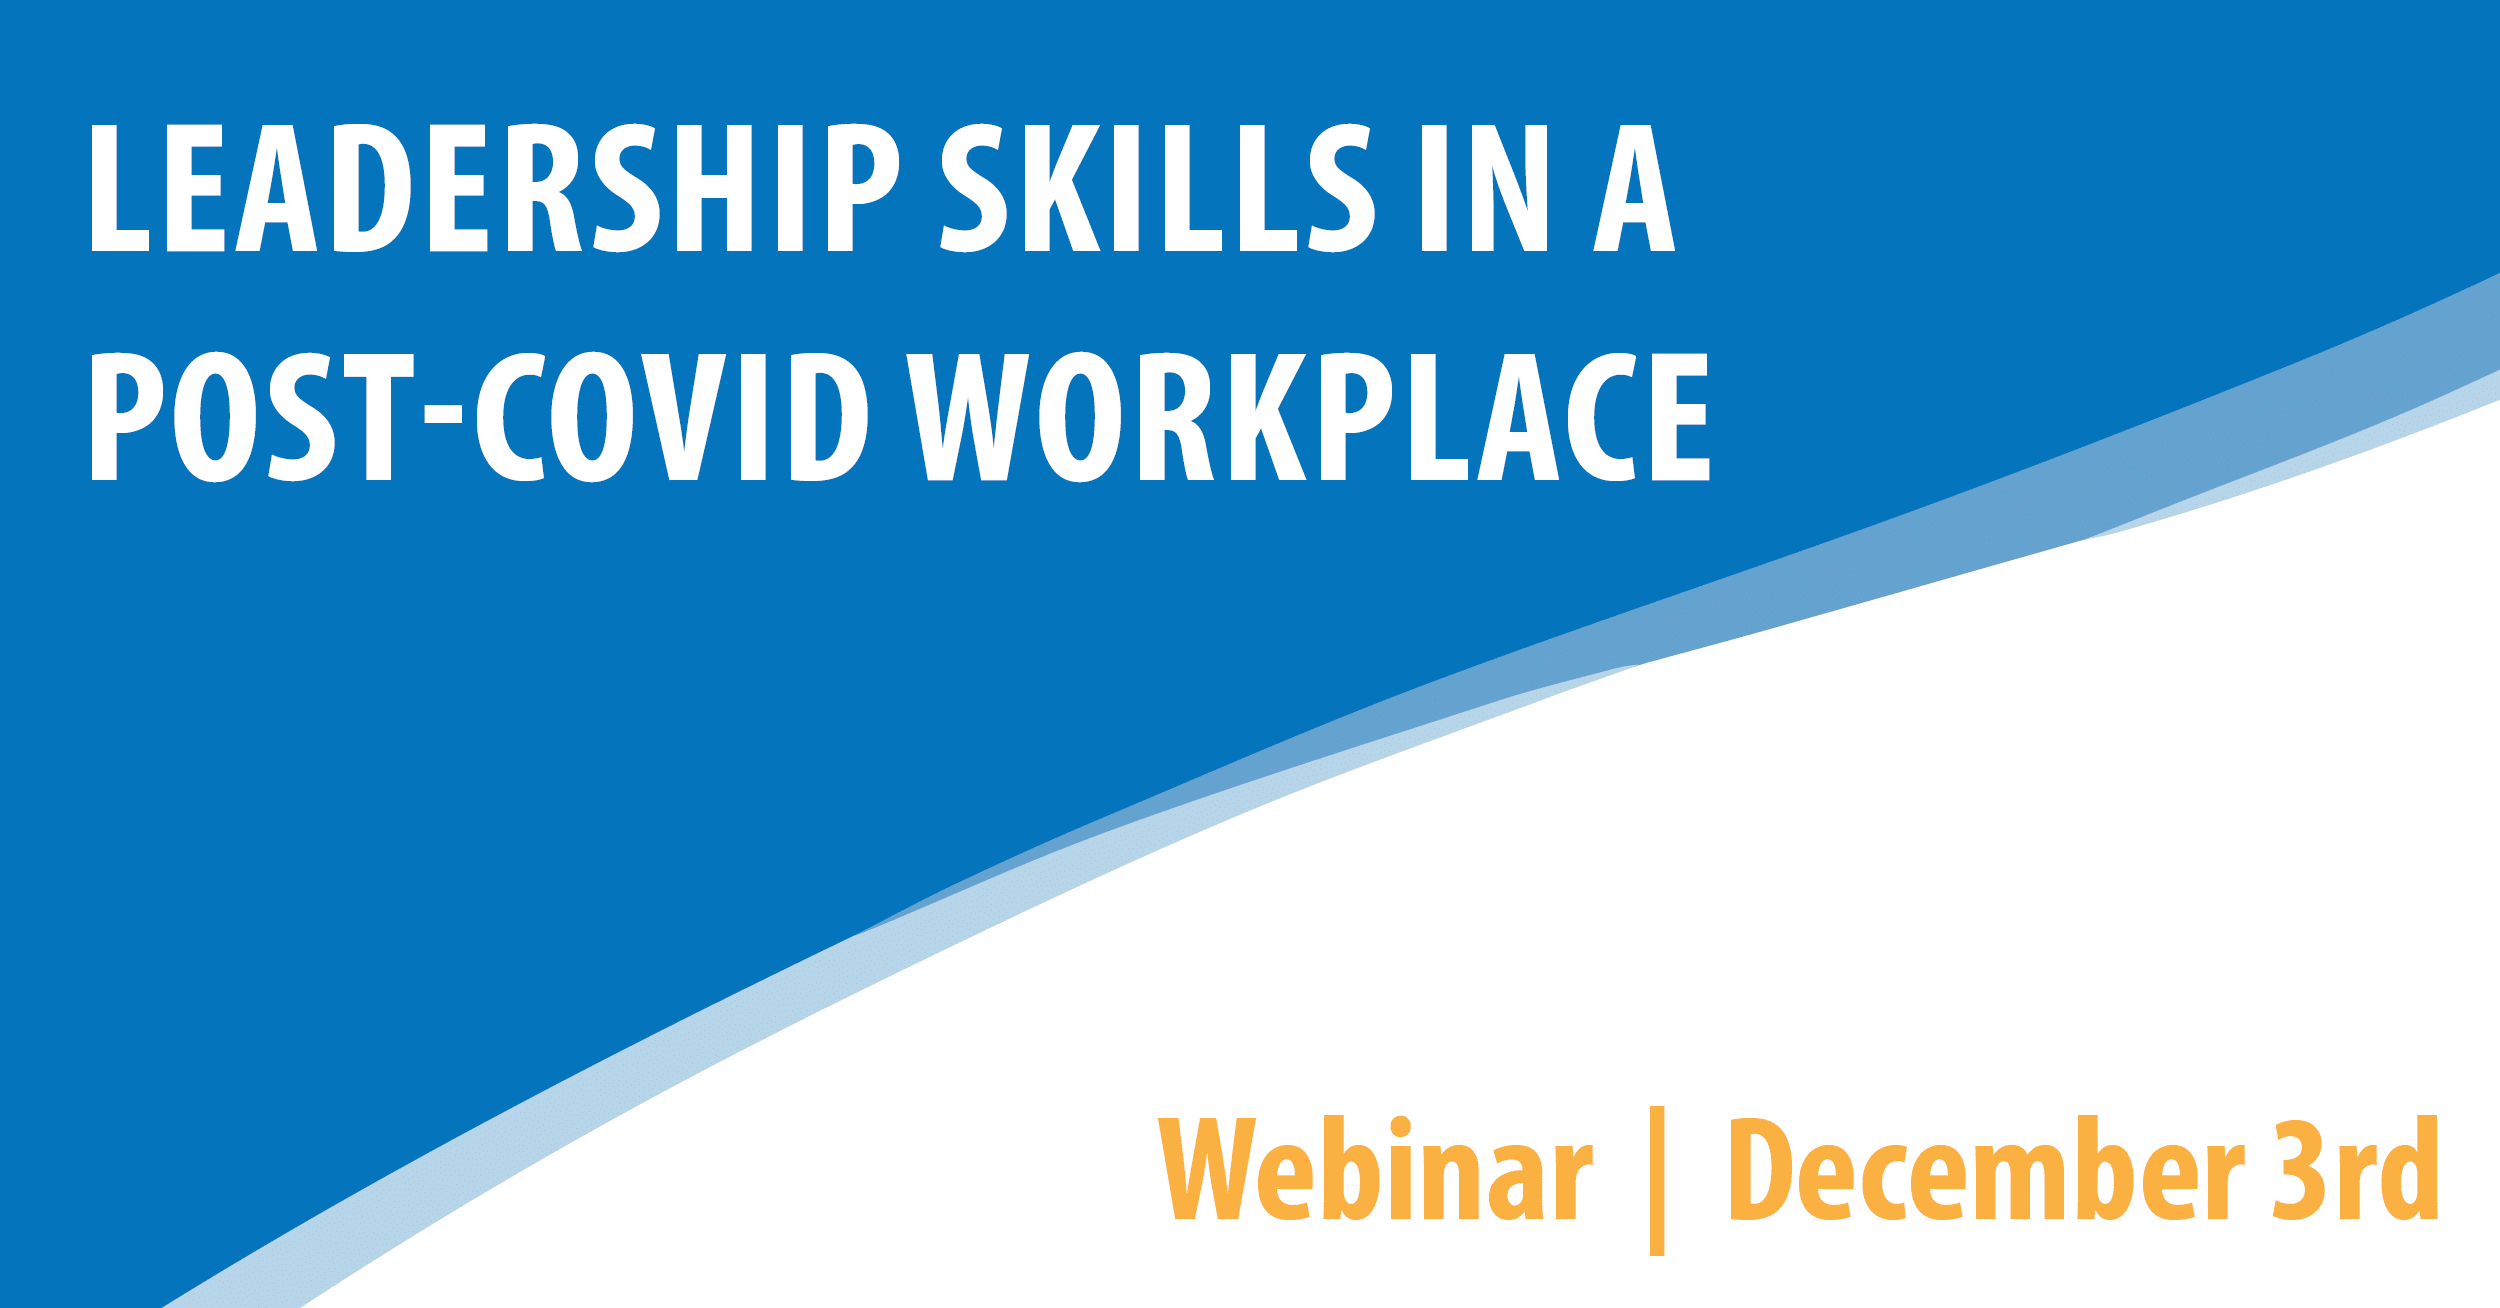 Session 3: Leadership Skills in a Post-COVID Workplace